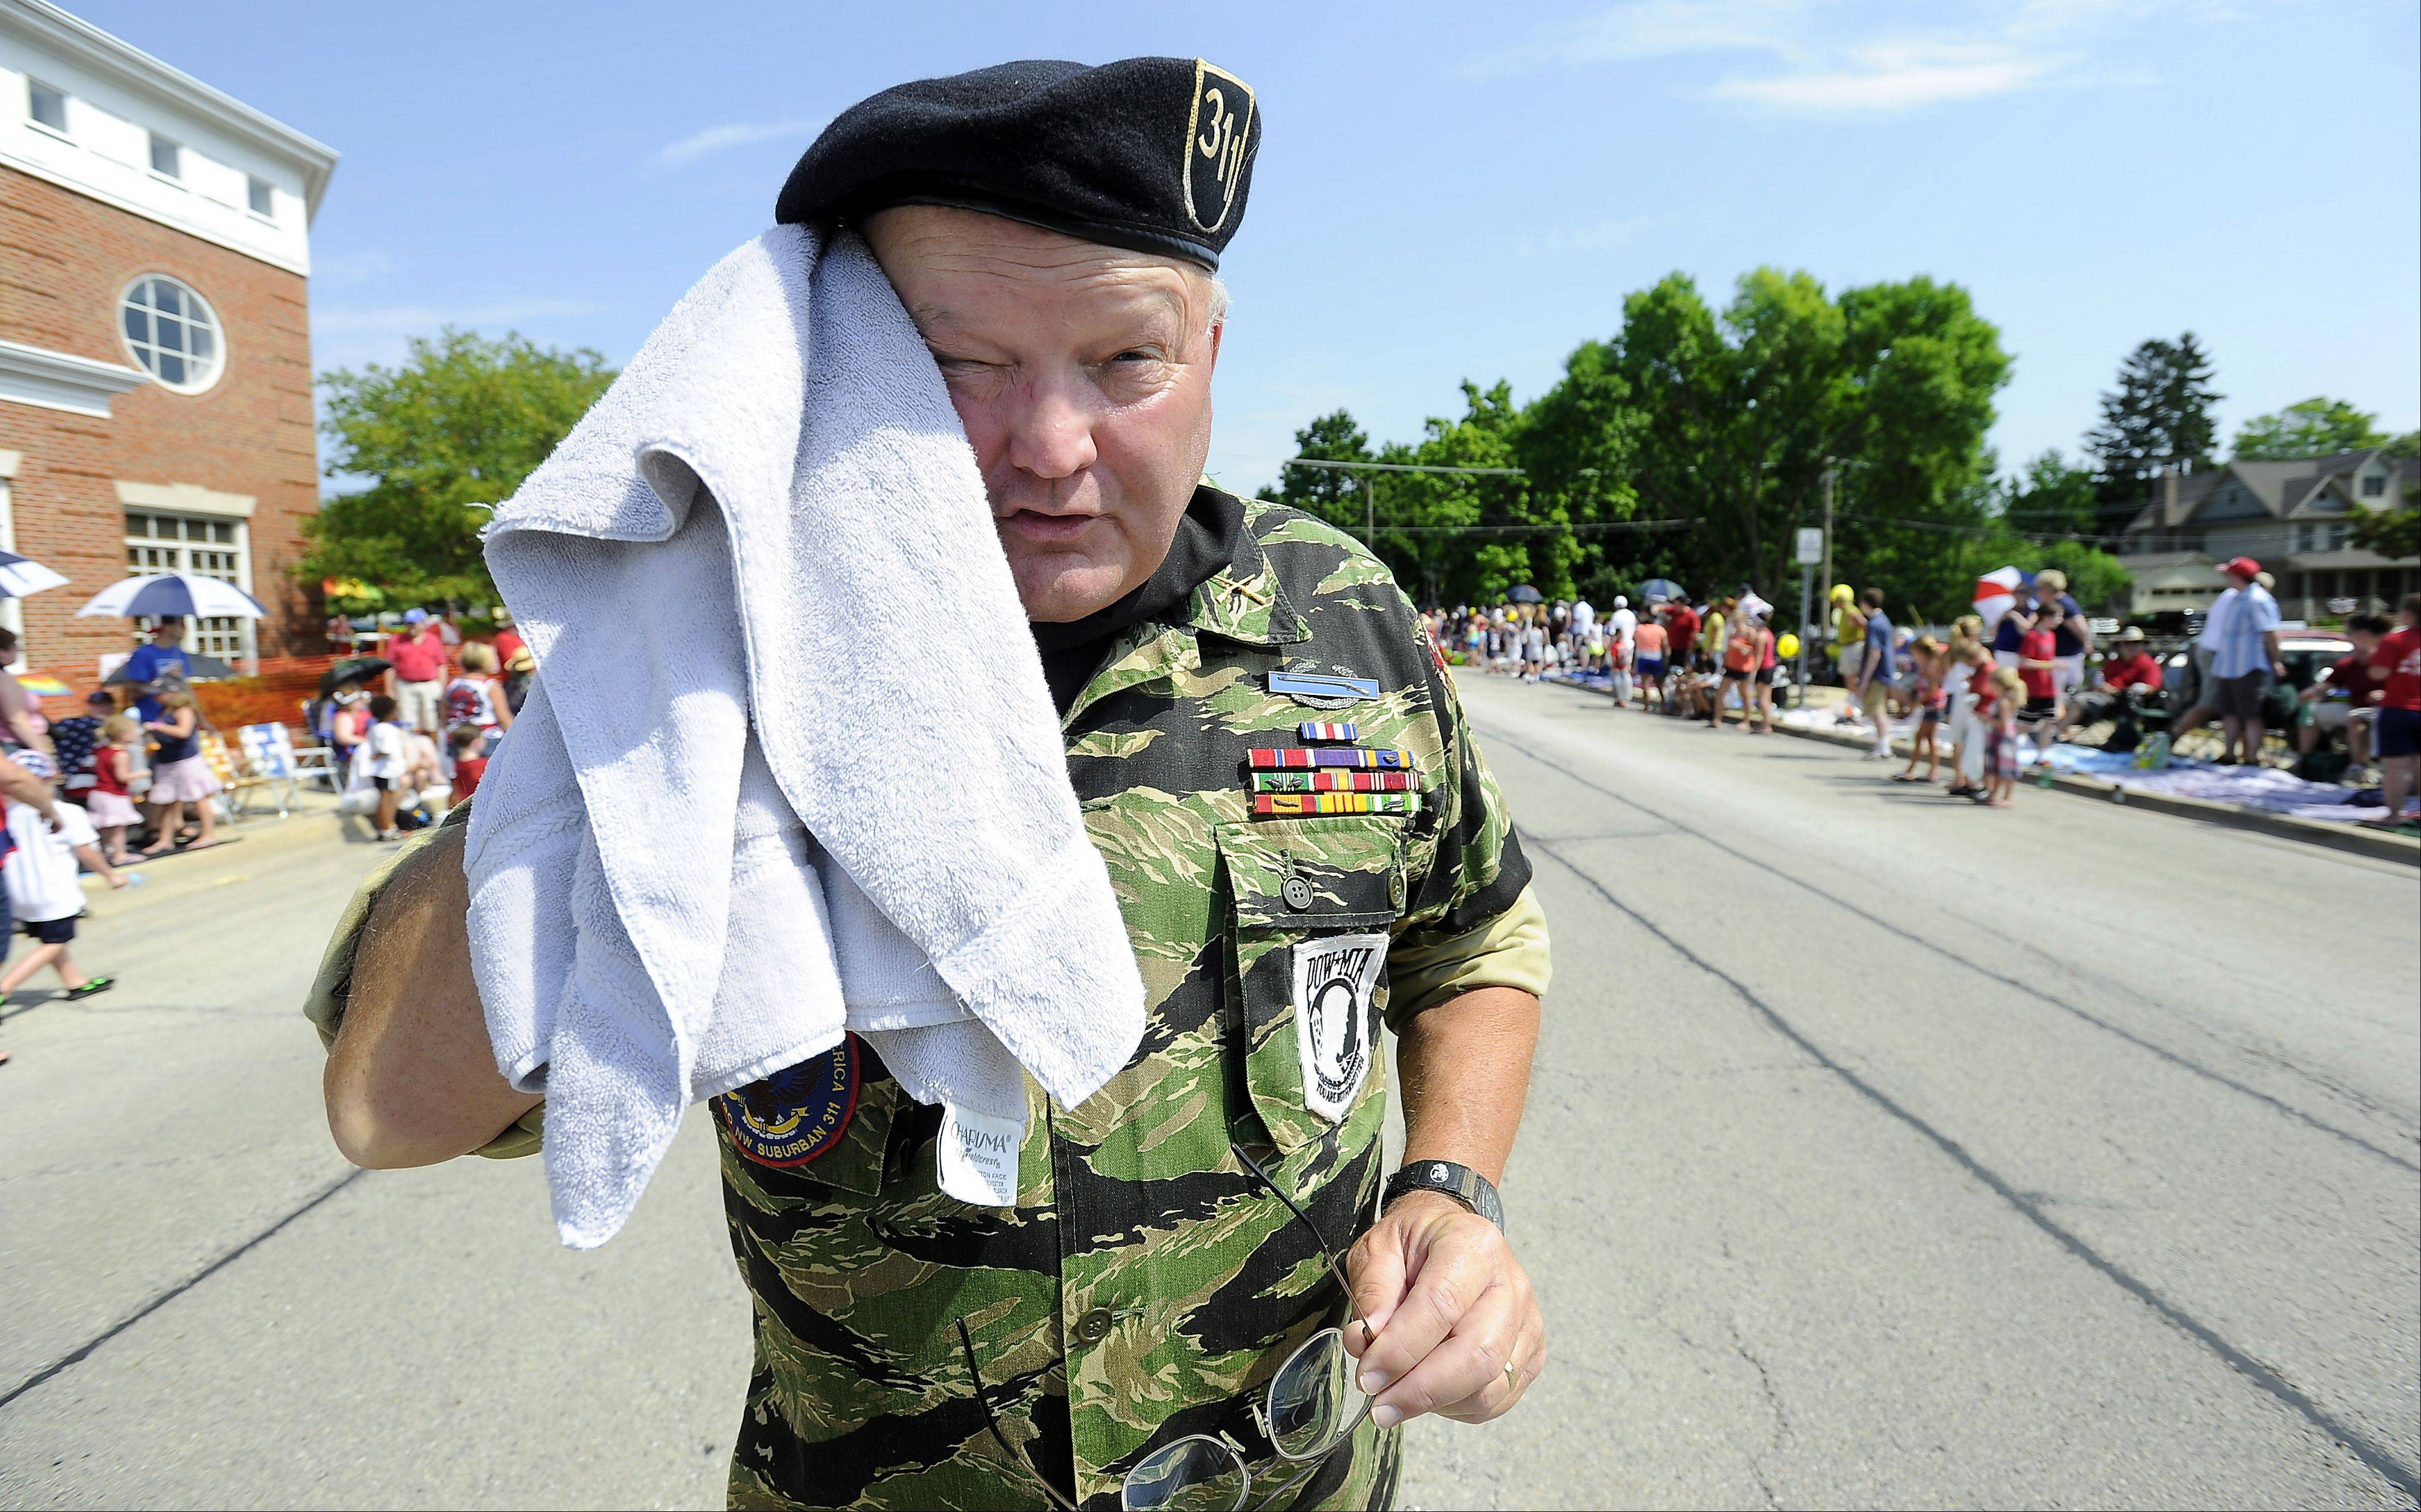 Bill Christiansen of Des Plaines Vietnam Veterans of America Chapter 311 taking a moment to wipe down his sweaty head while marching in a very hot Fourth of July the parade on Wednesday in Arlington Heights.